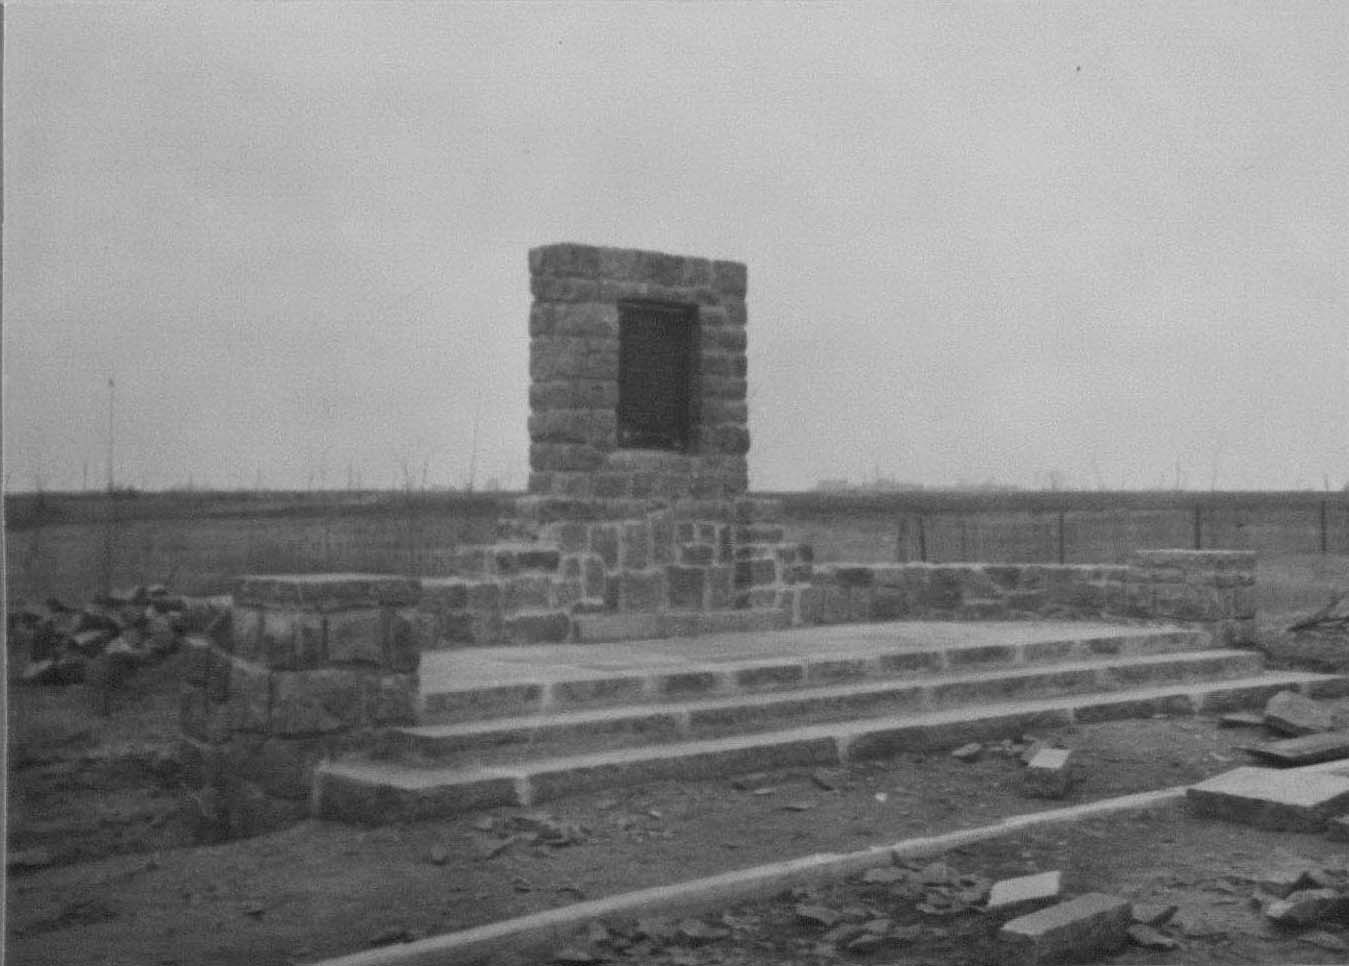 Historic photo by Olson from 1940. The marker was nearly complete.